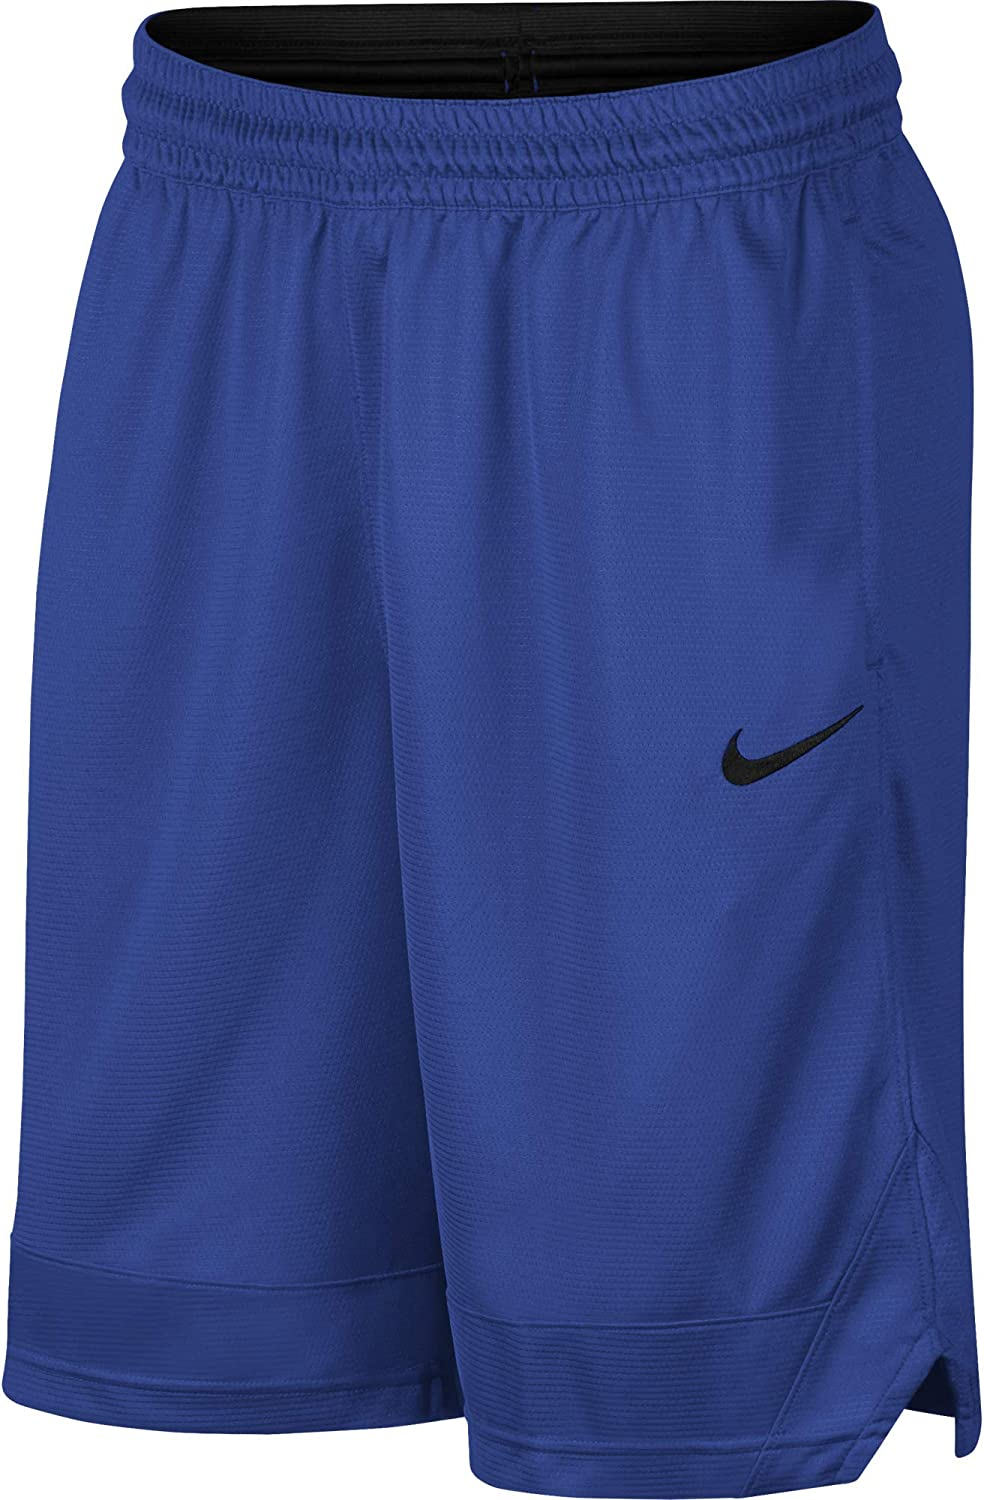 Nike Dri-FIT Icon: Clothing